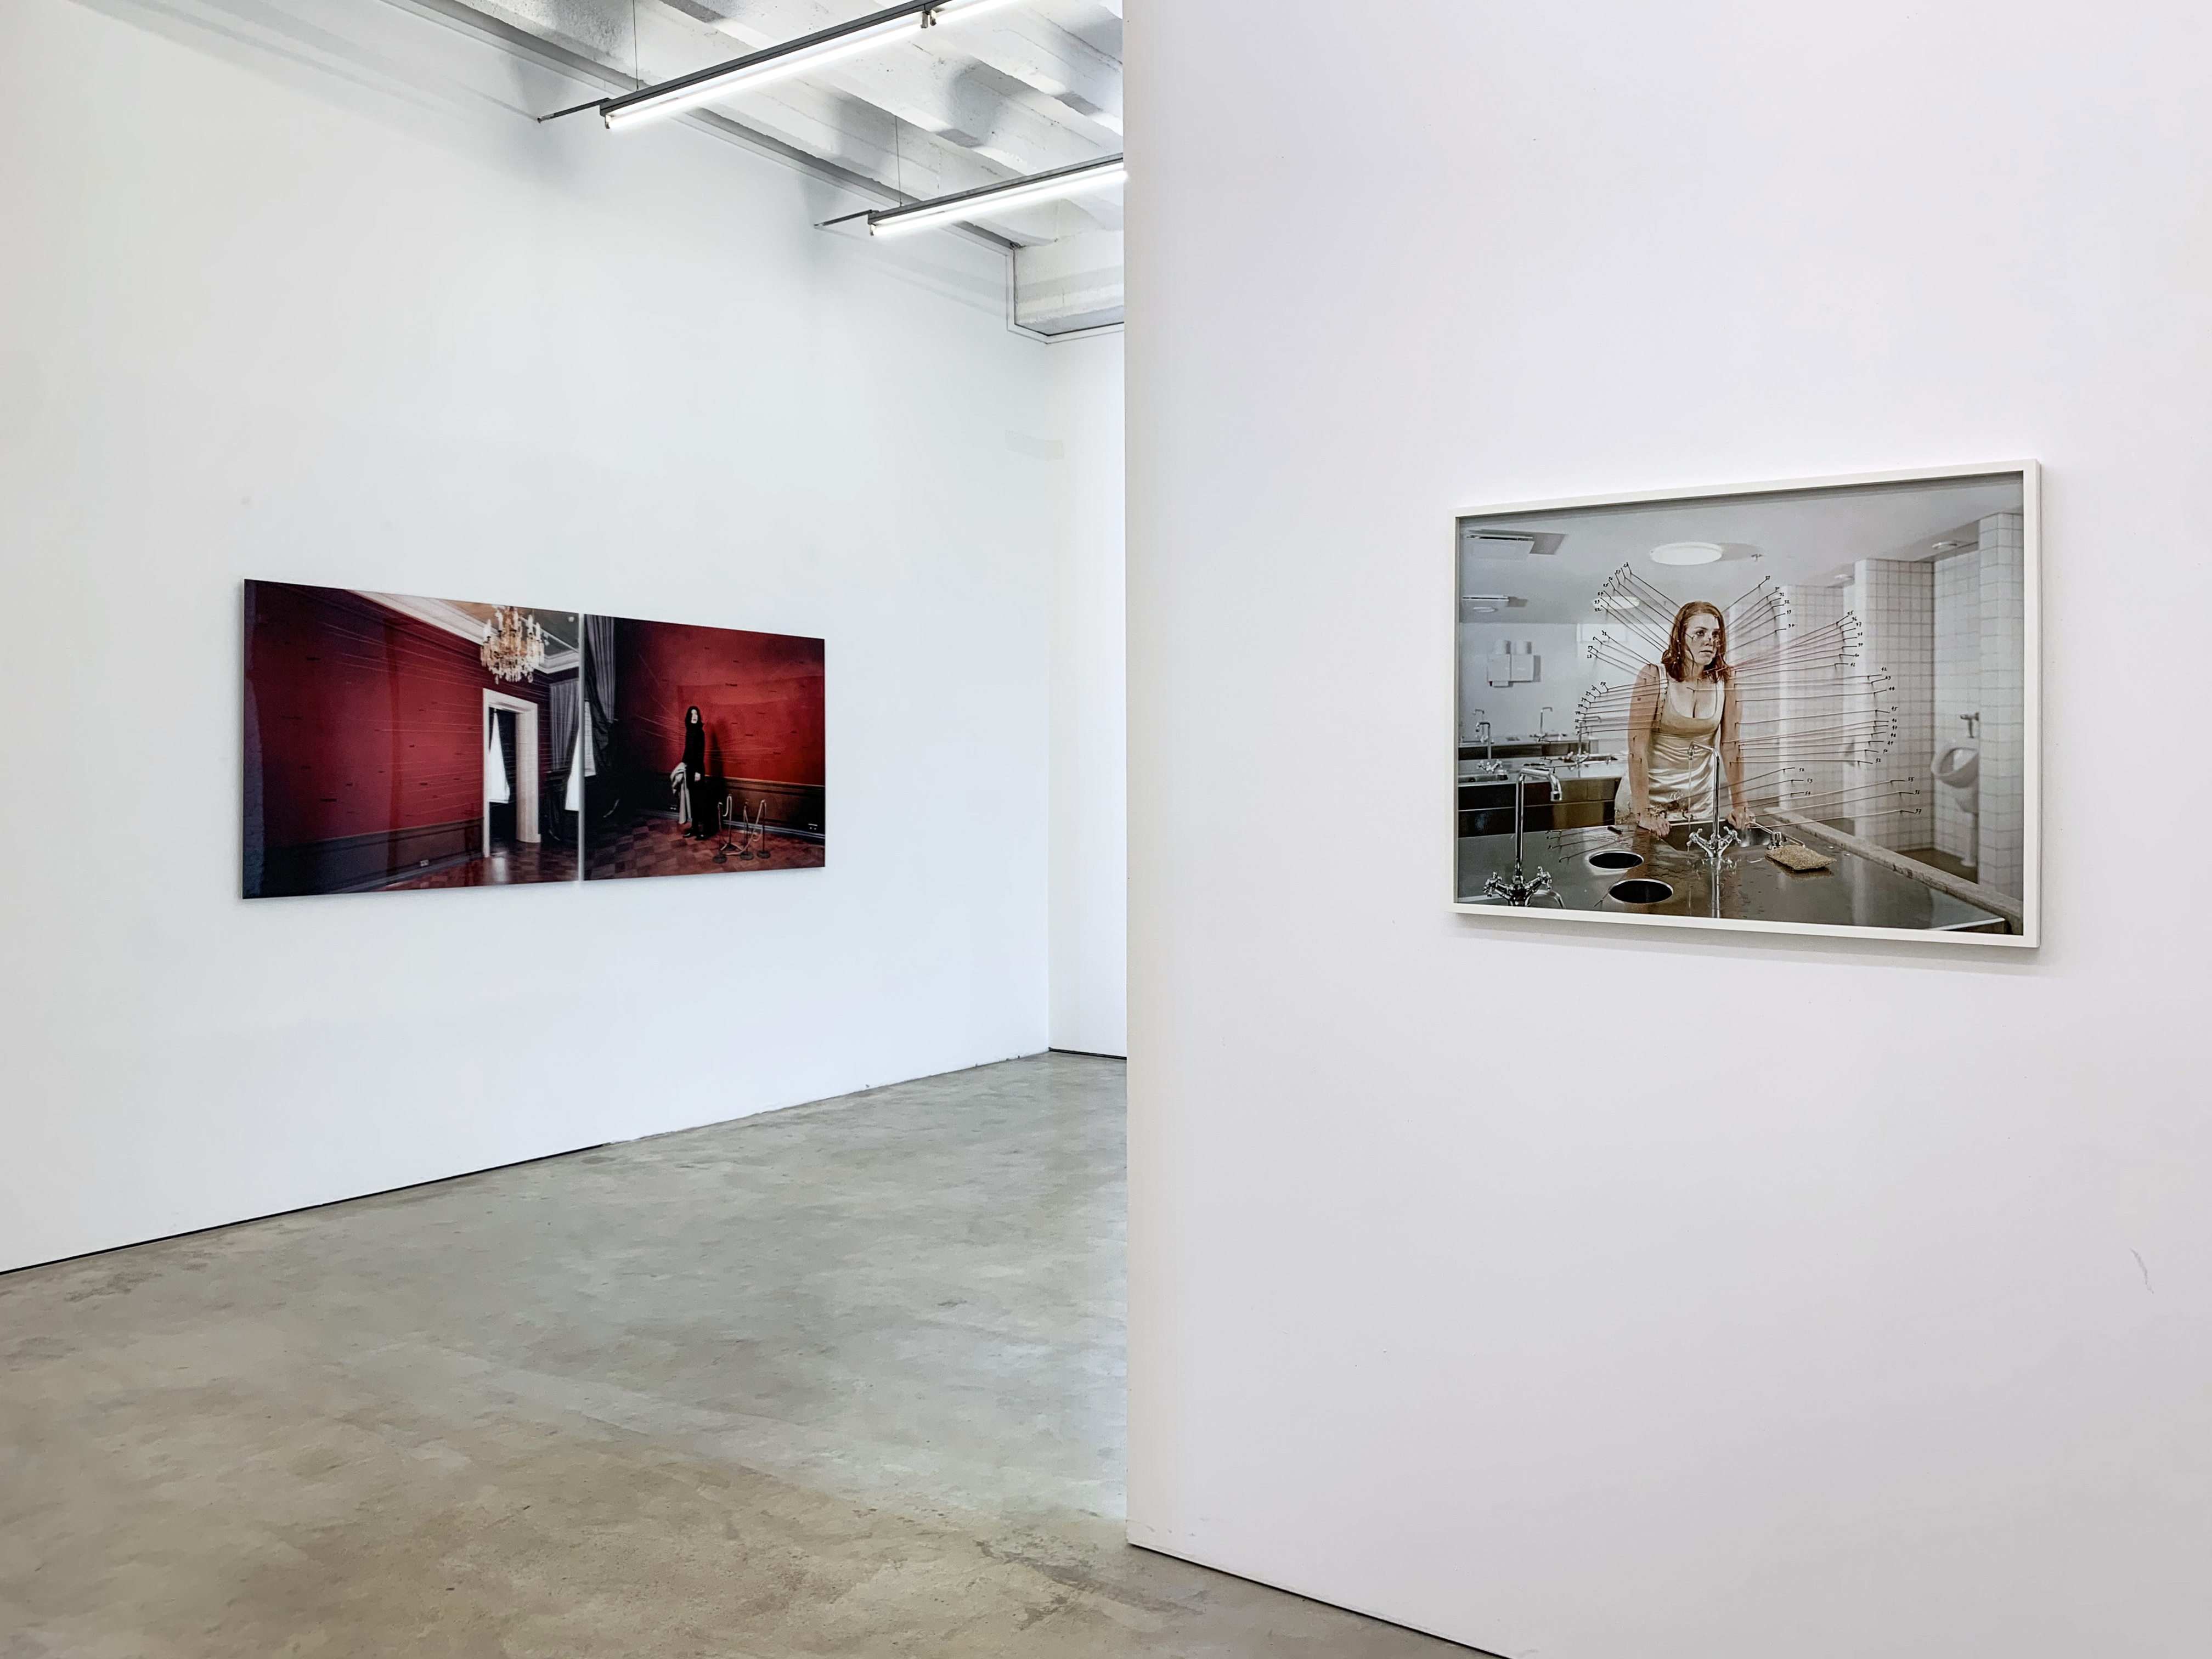 Installation View Jyrki Parantainen at Persons Projects, Berlin 2020